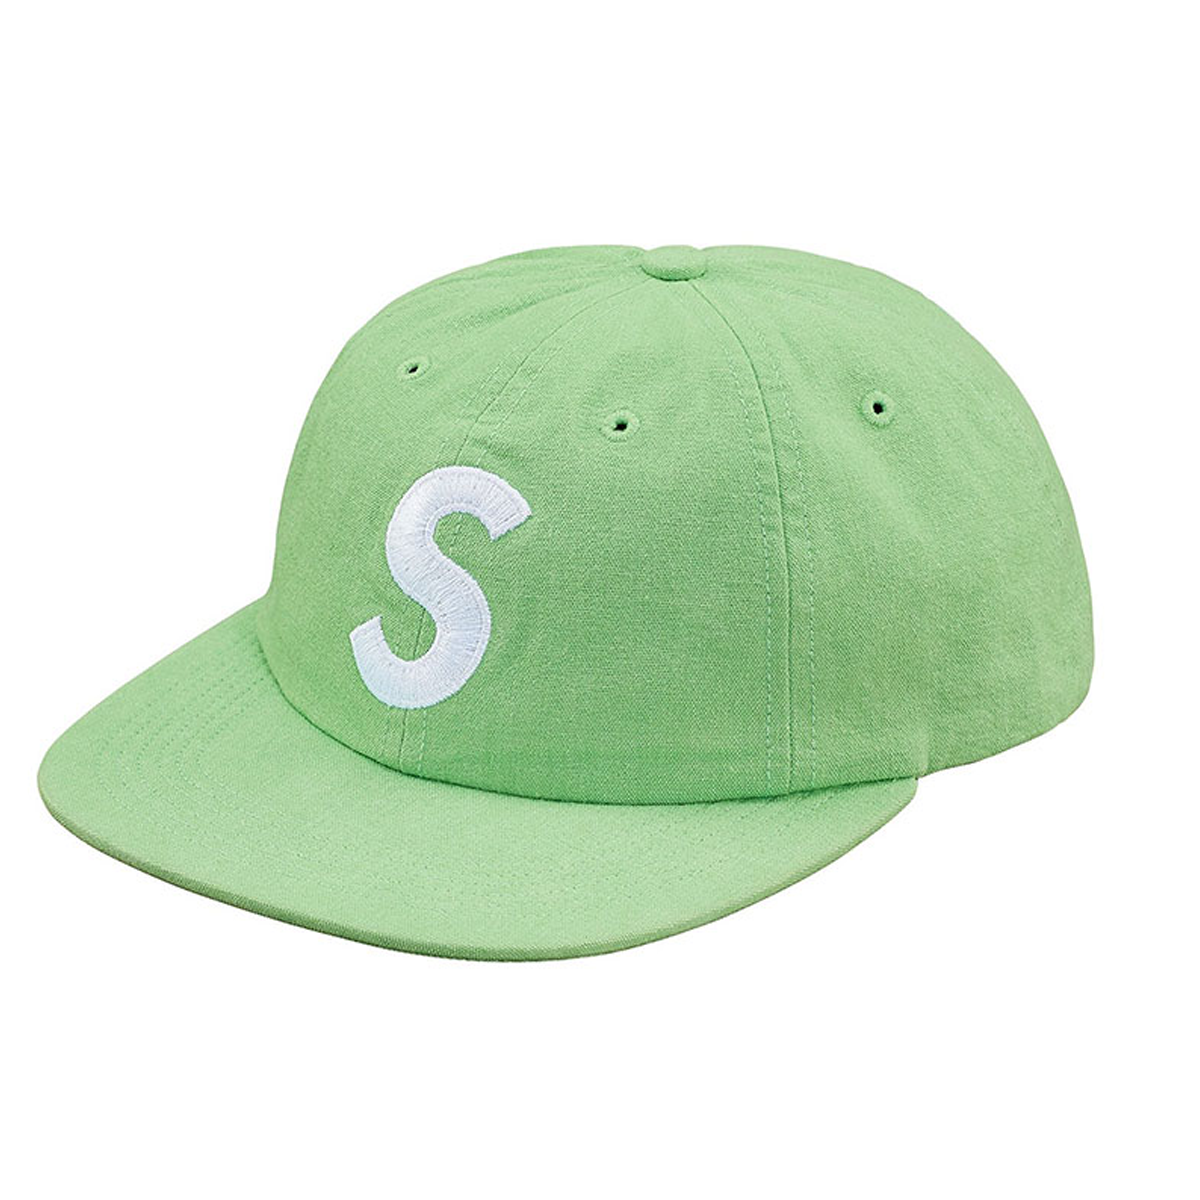 9145d4525c5 Home › Supreme Washed Chambray S Logo 6-Panel Green. Best Seller.  soulland-playtype-break-coffee-mug-white-black